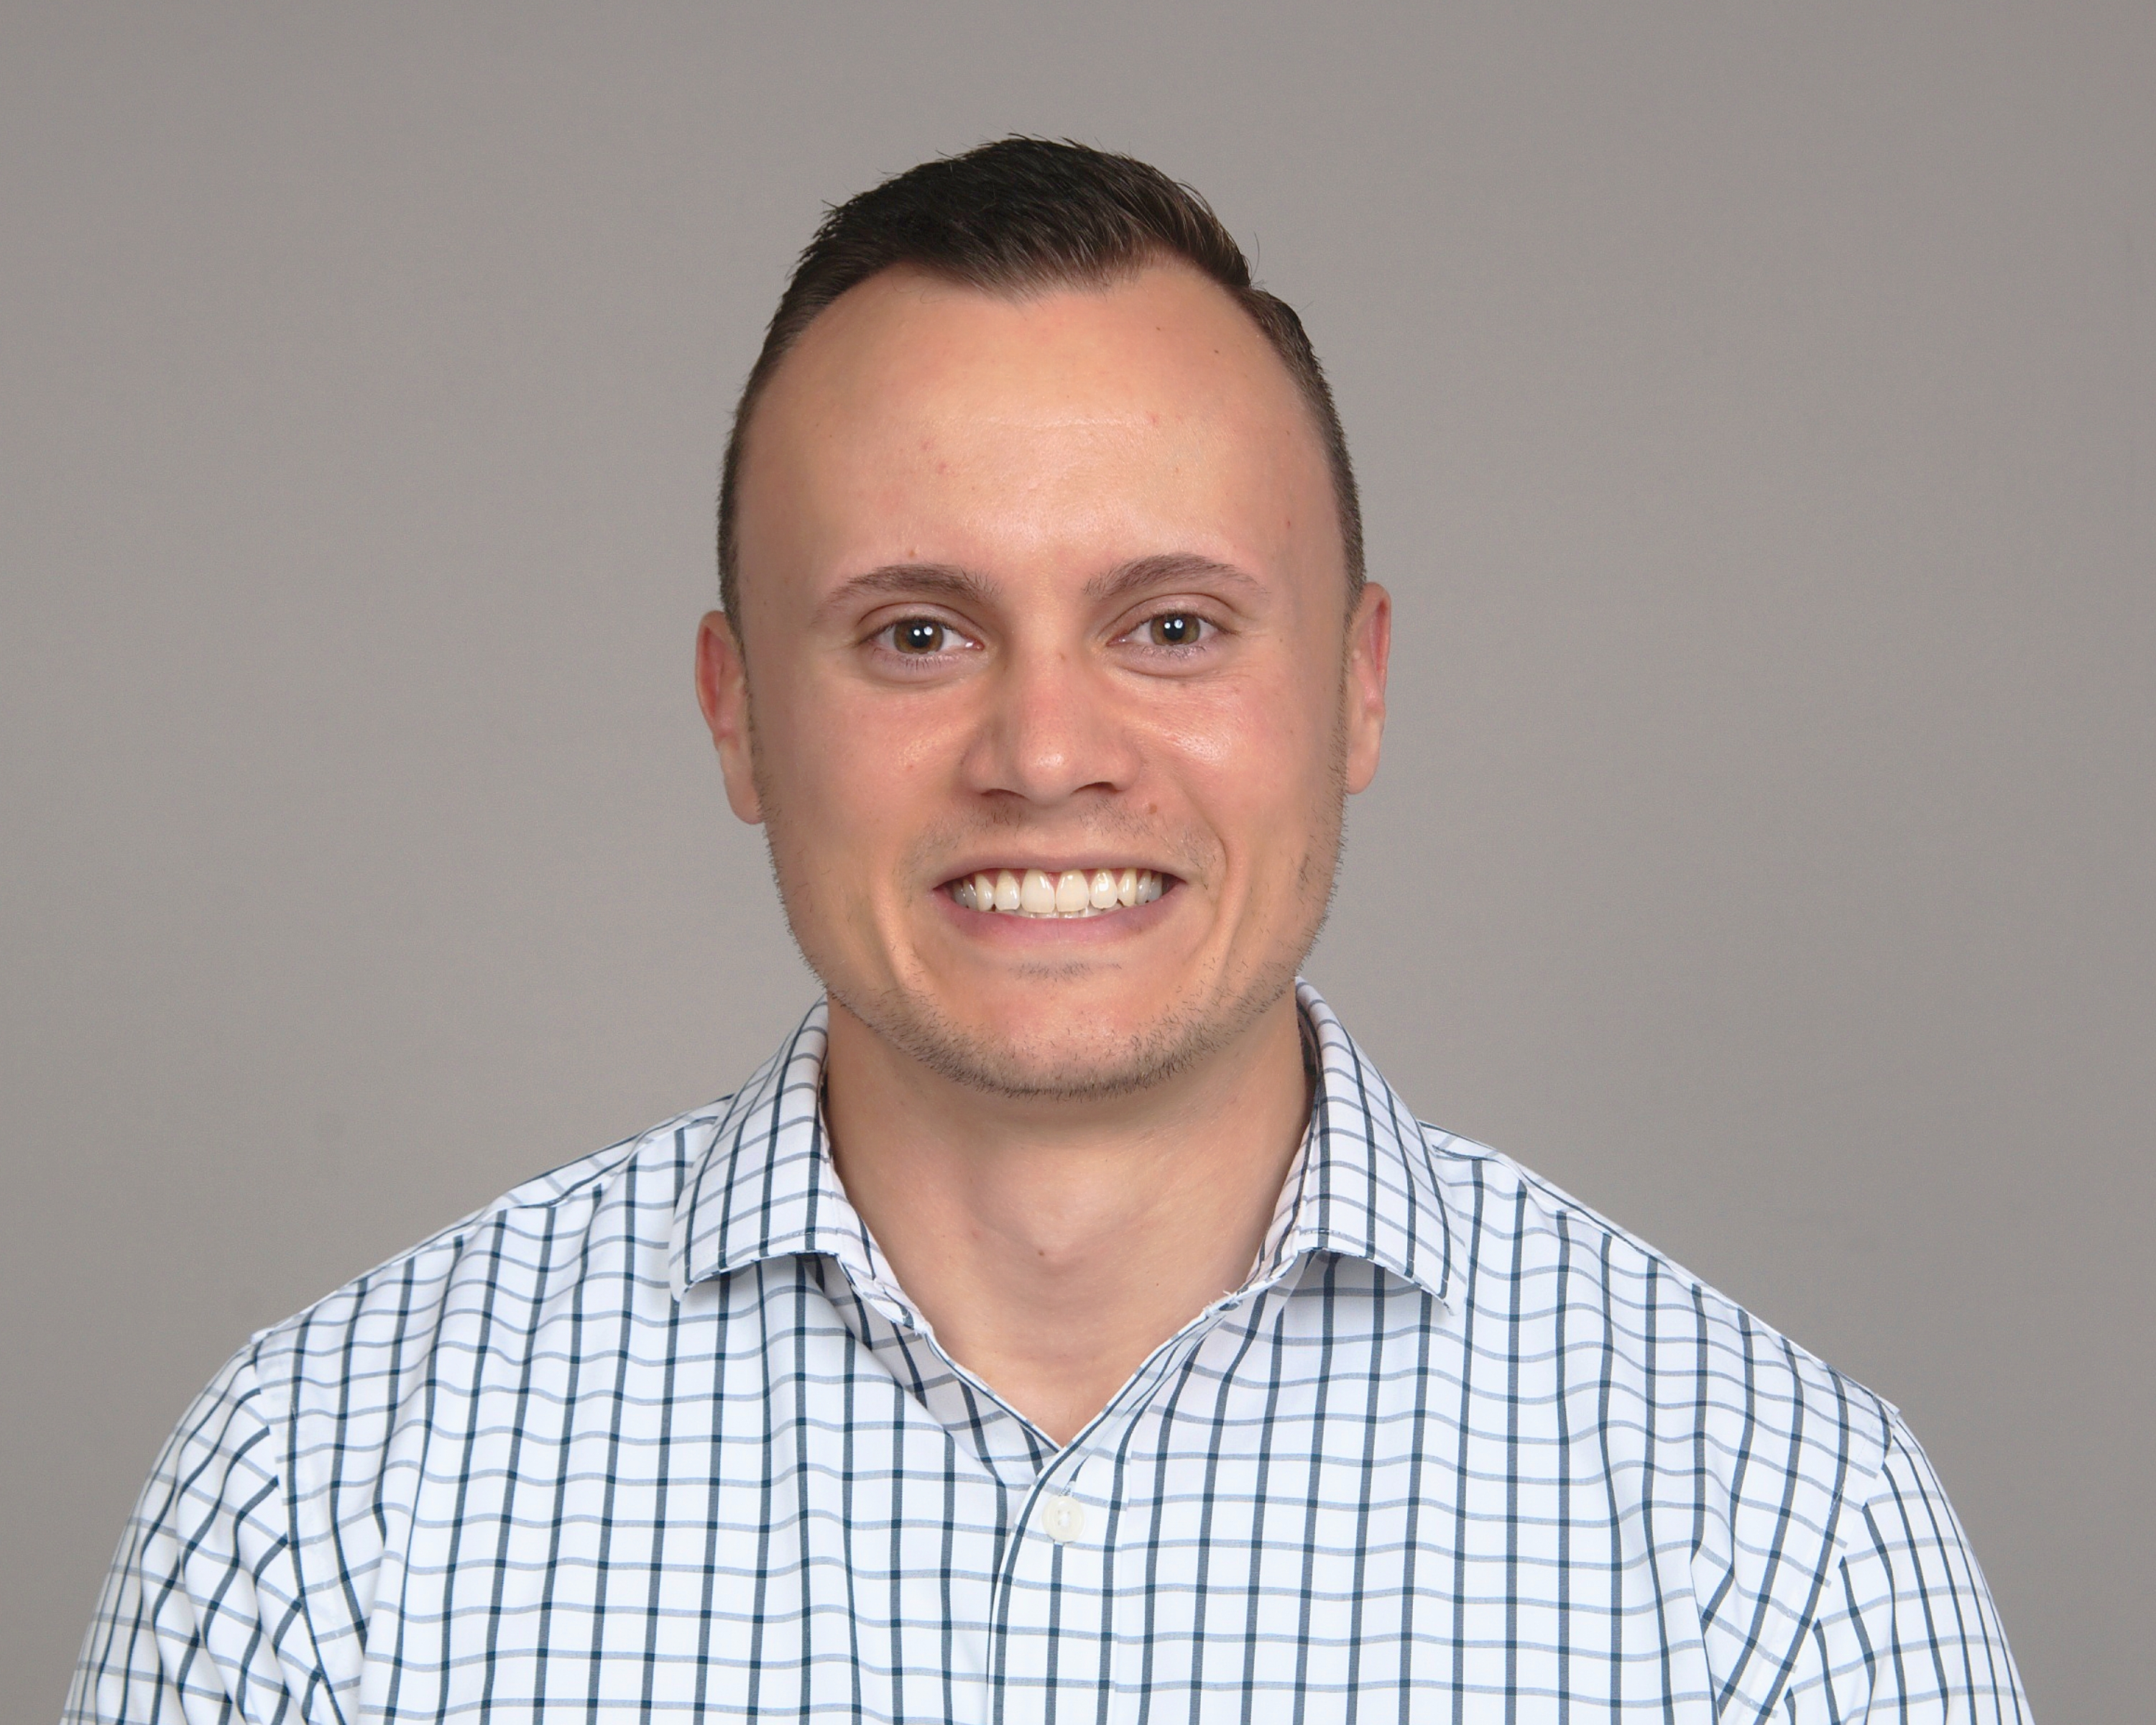 Board nc physical therapy - Jarred Has Worked In Various Practice Settings Across The Country And Joined Advanced Physical Therapy In 2017 As The Managing Partner Of The Terryville